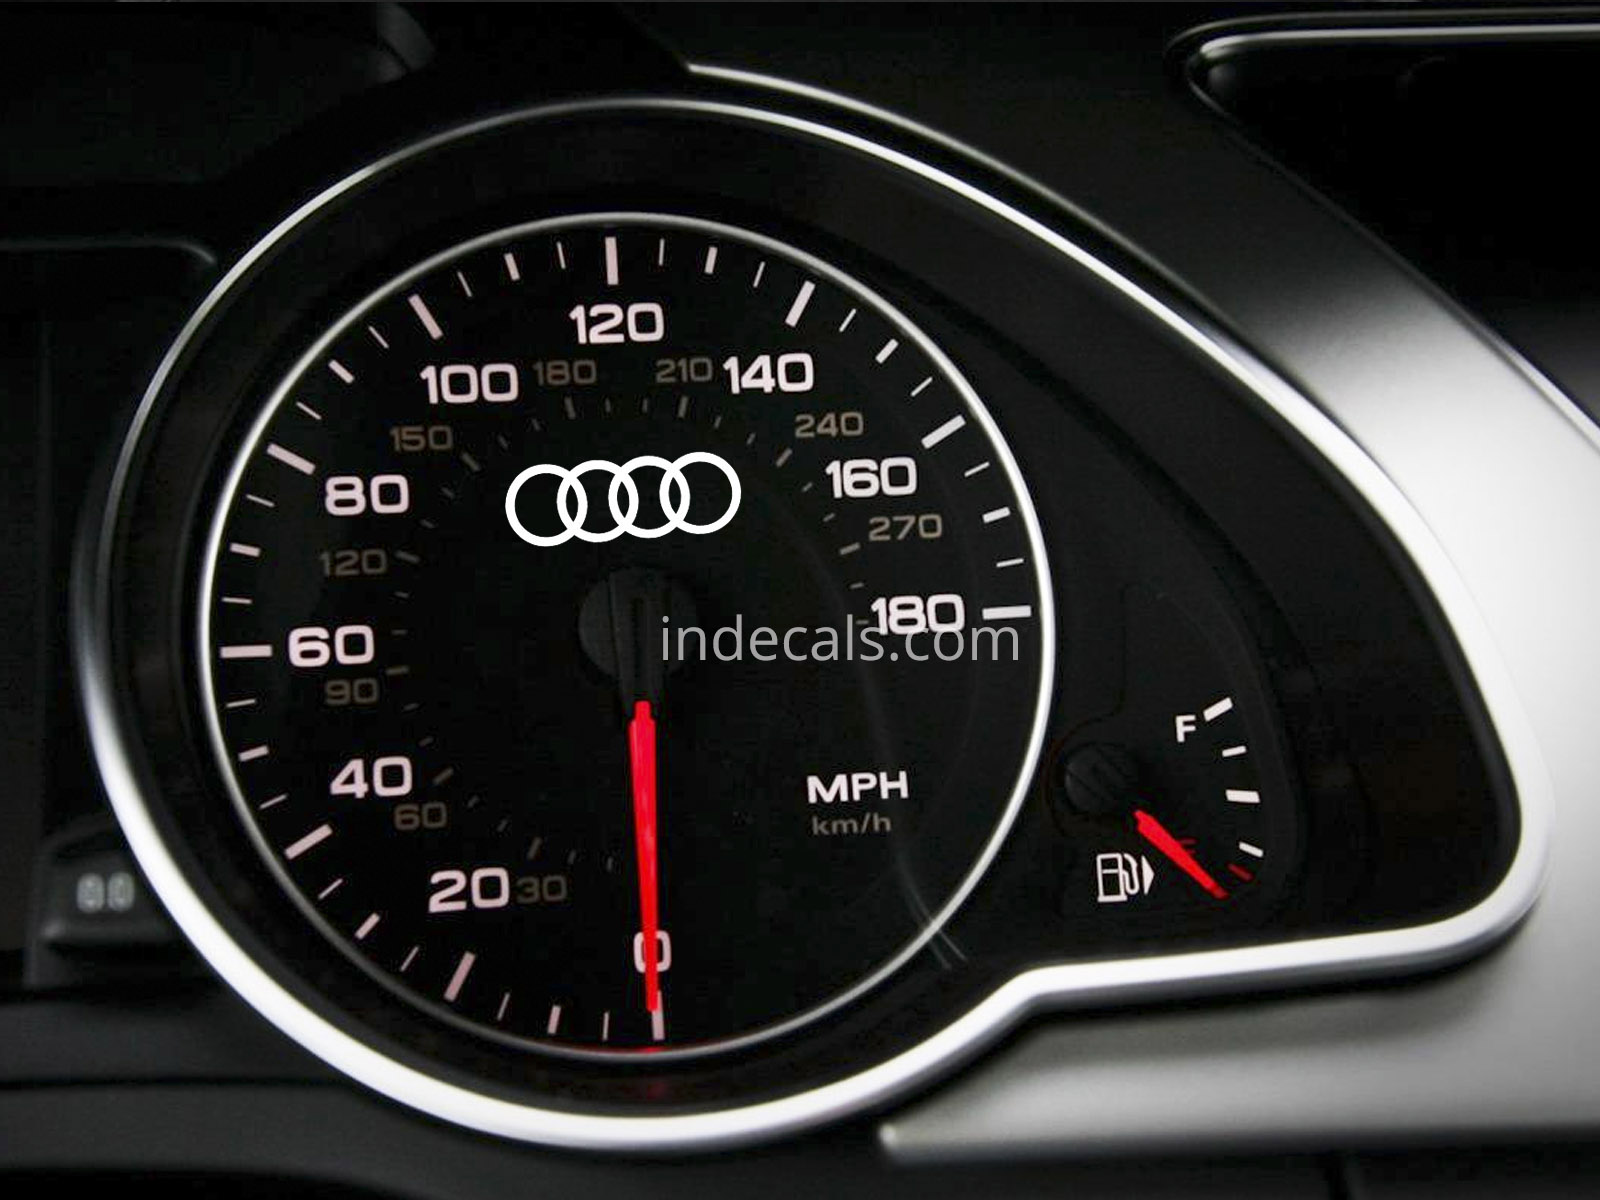 3 x Audi Rings Stickers for Speedometer - White